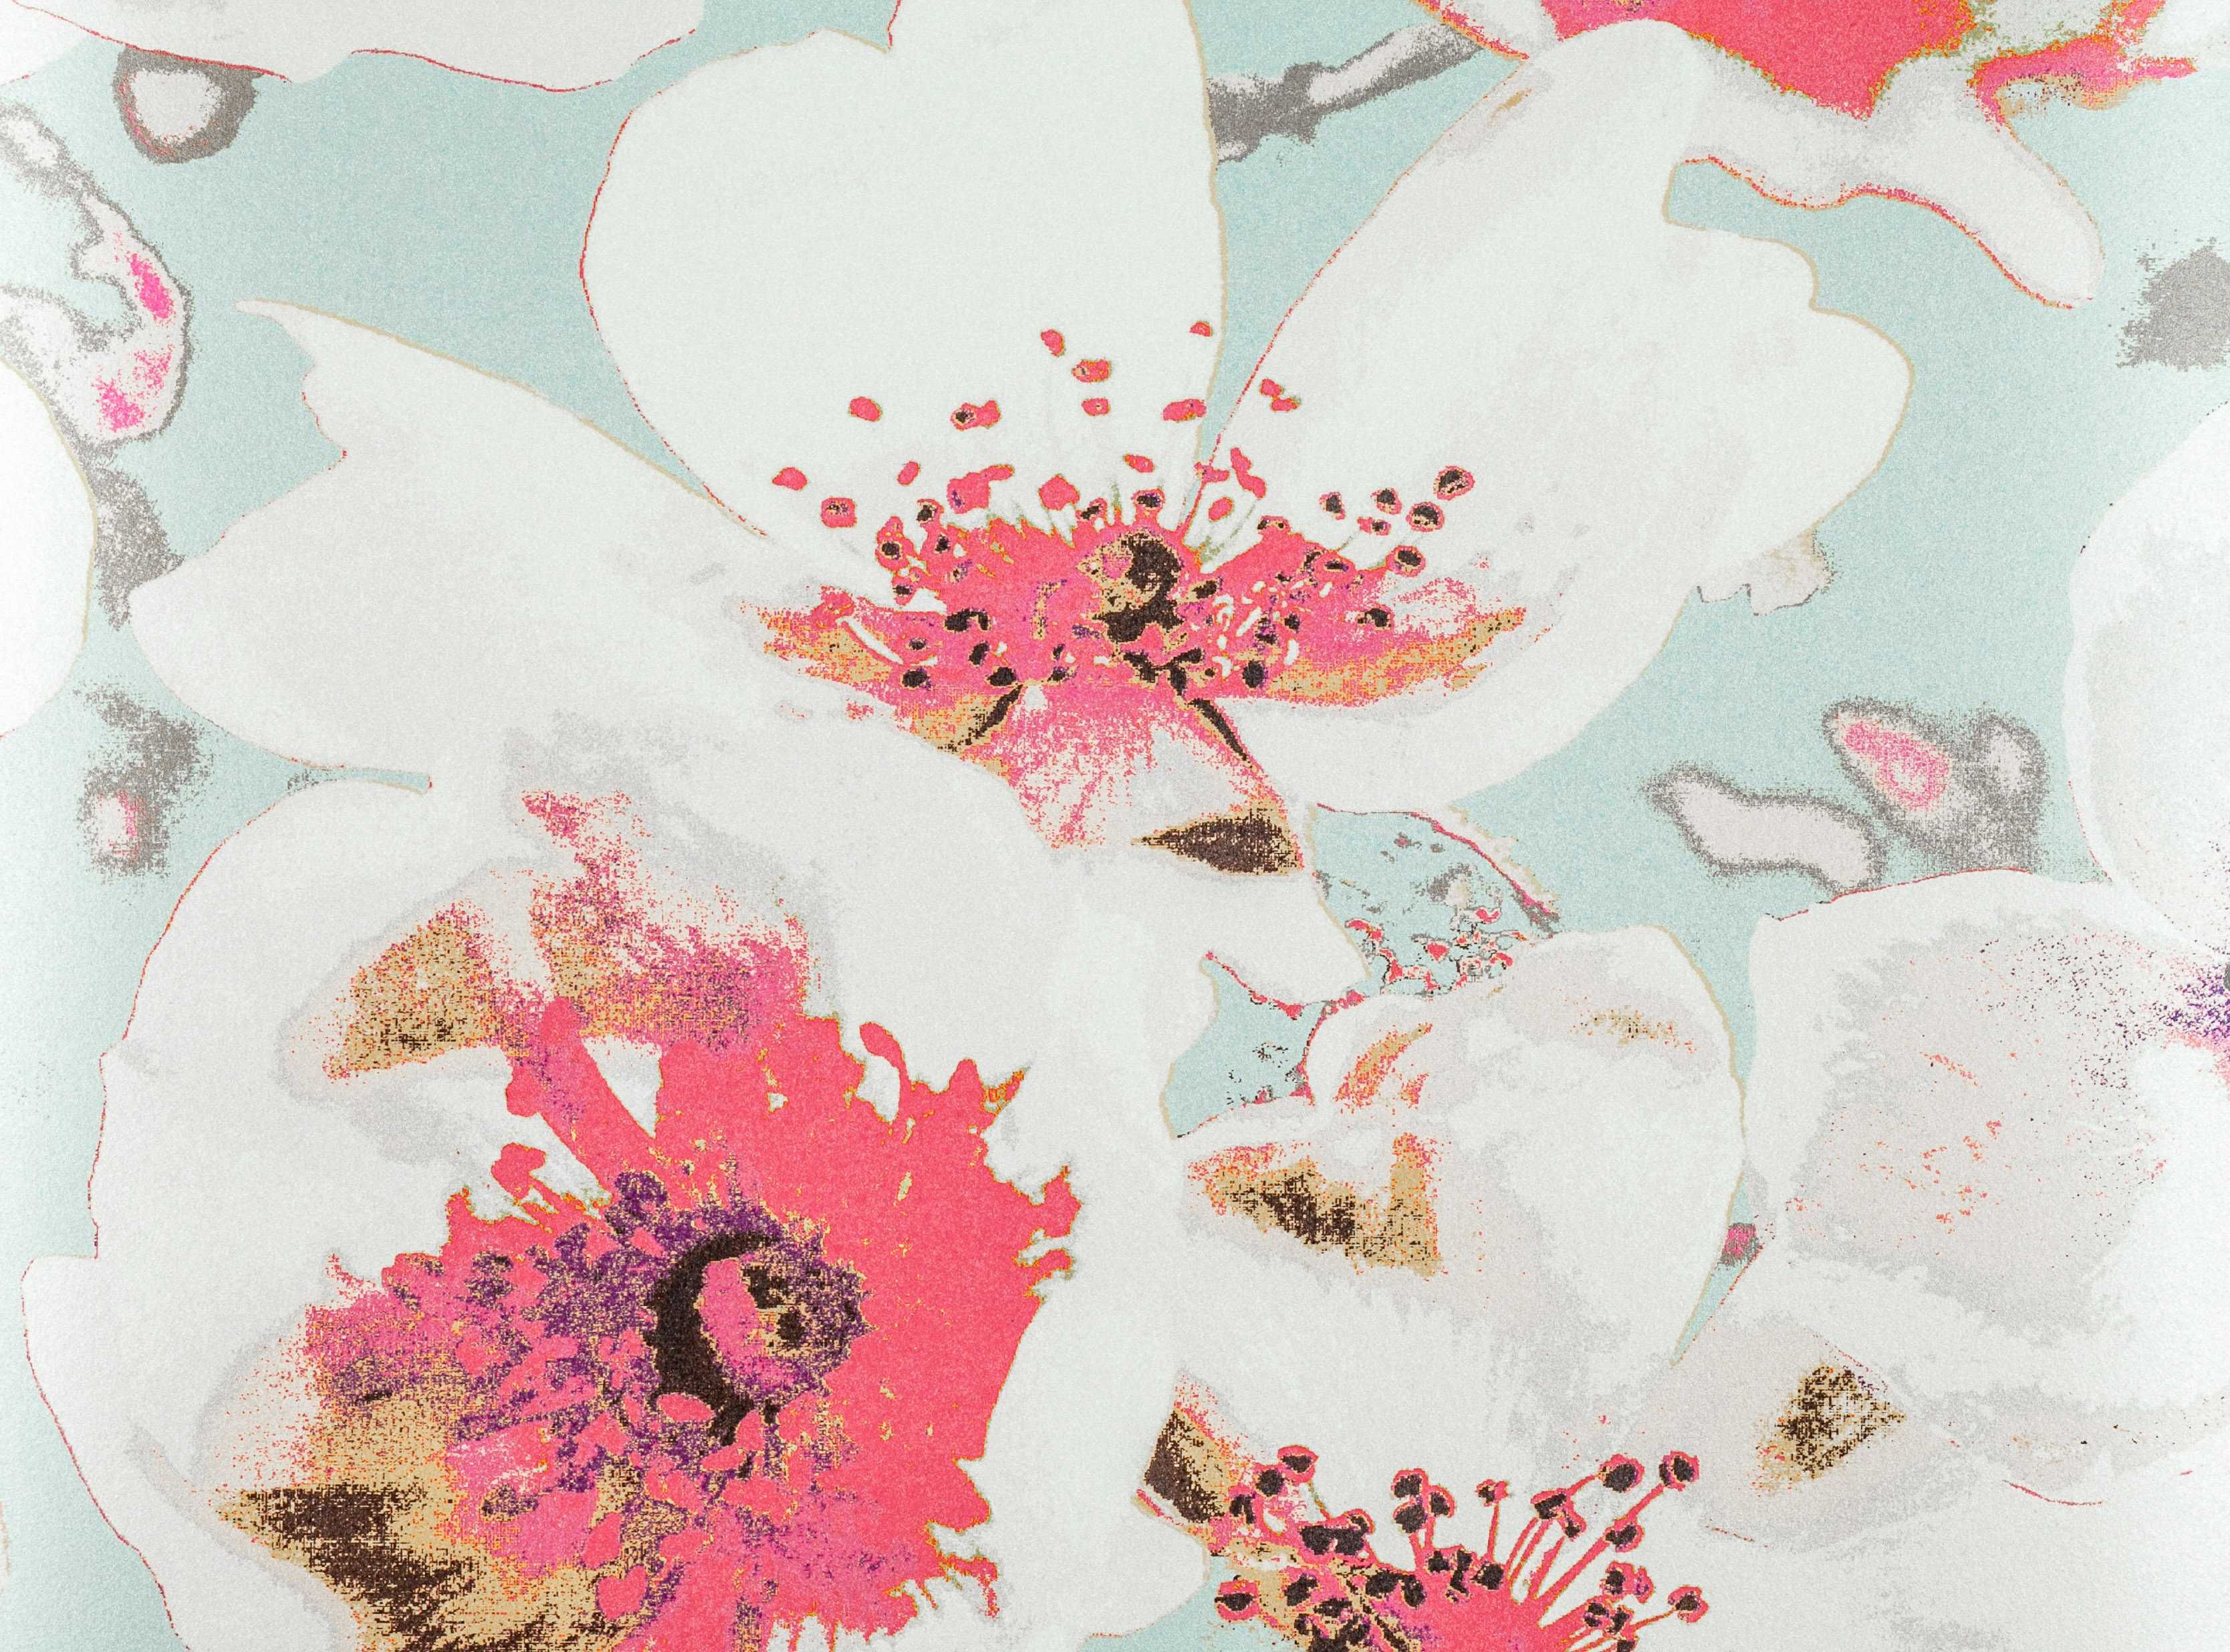 an innovative and stunning large scale floral design digitally